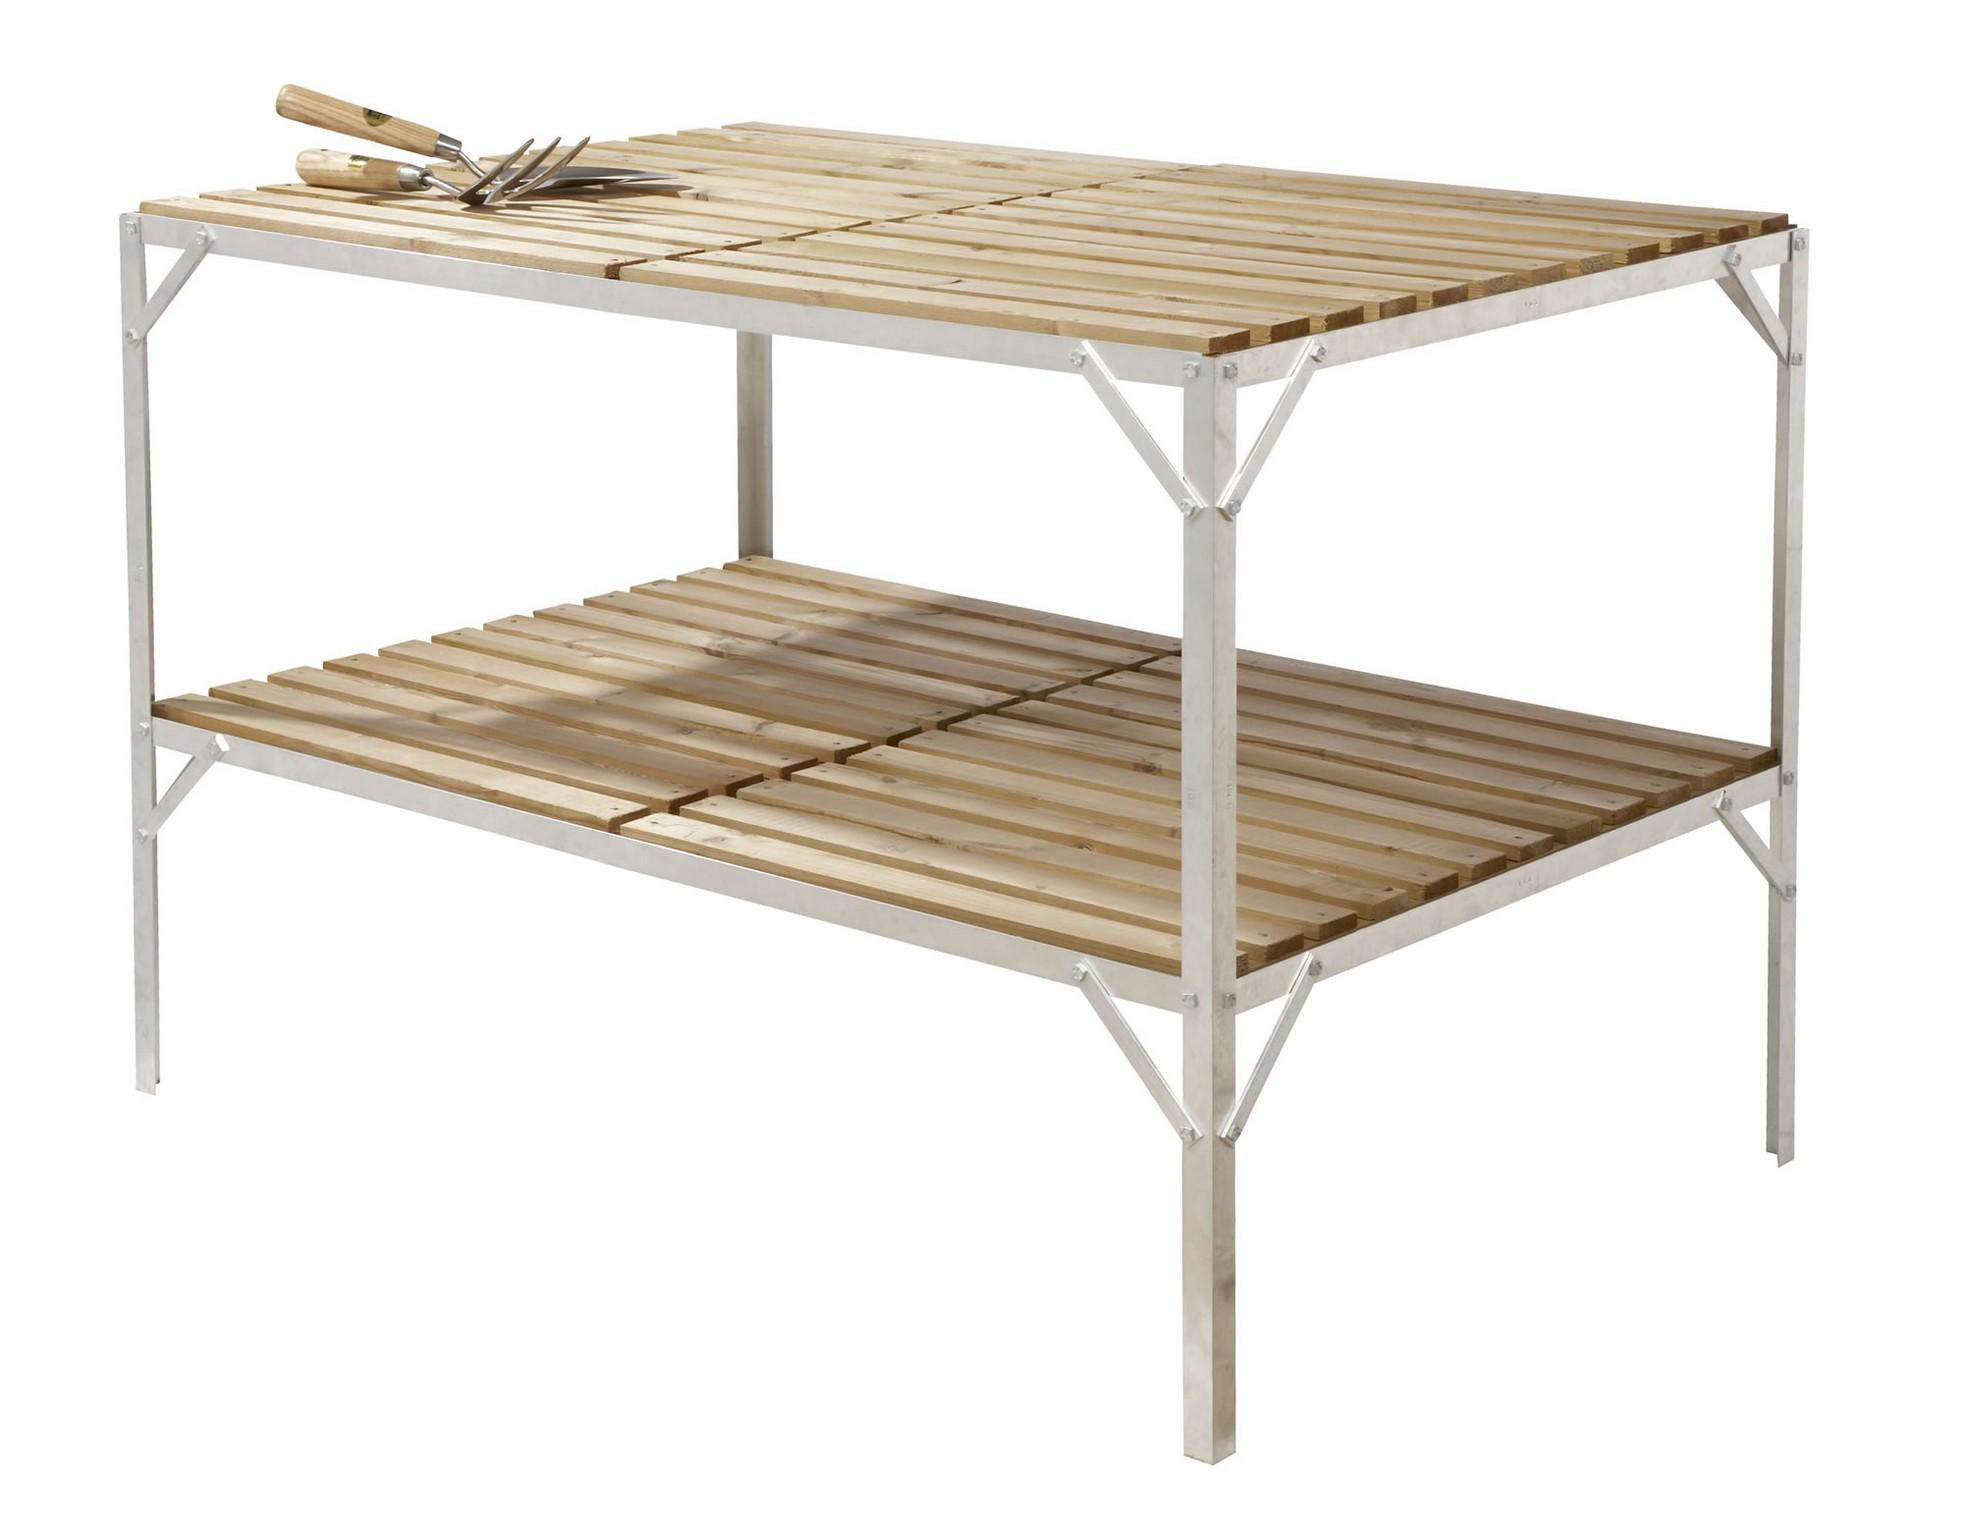 Greenhouse staging bench wooden two tier 30 wide x 4ft - Wooden staging for greenhouse ...